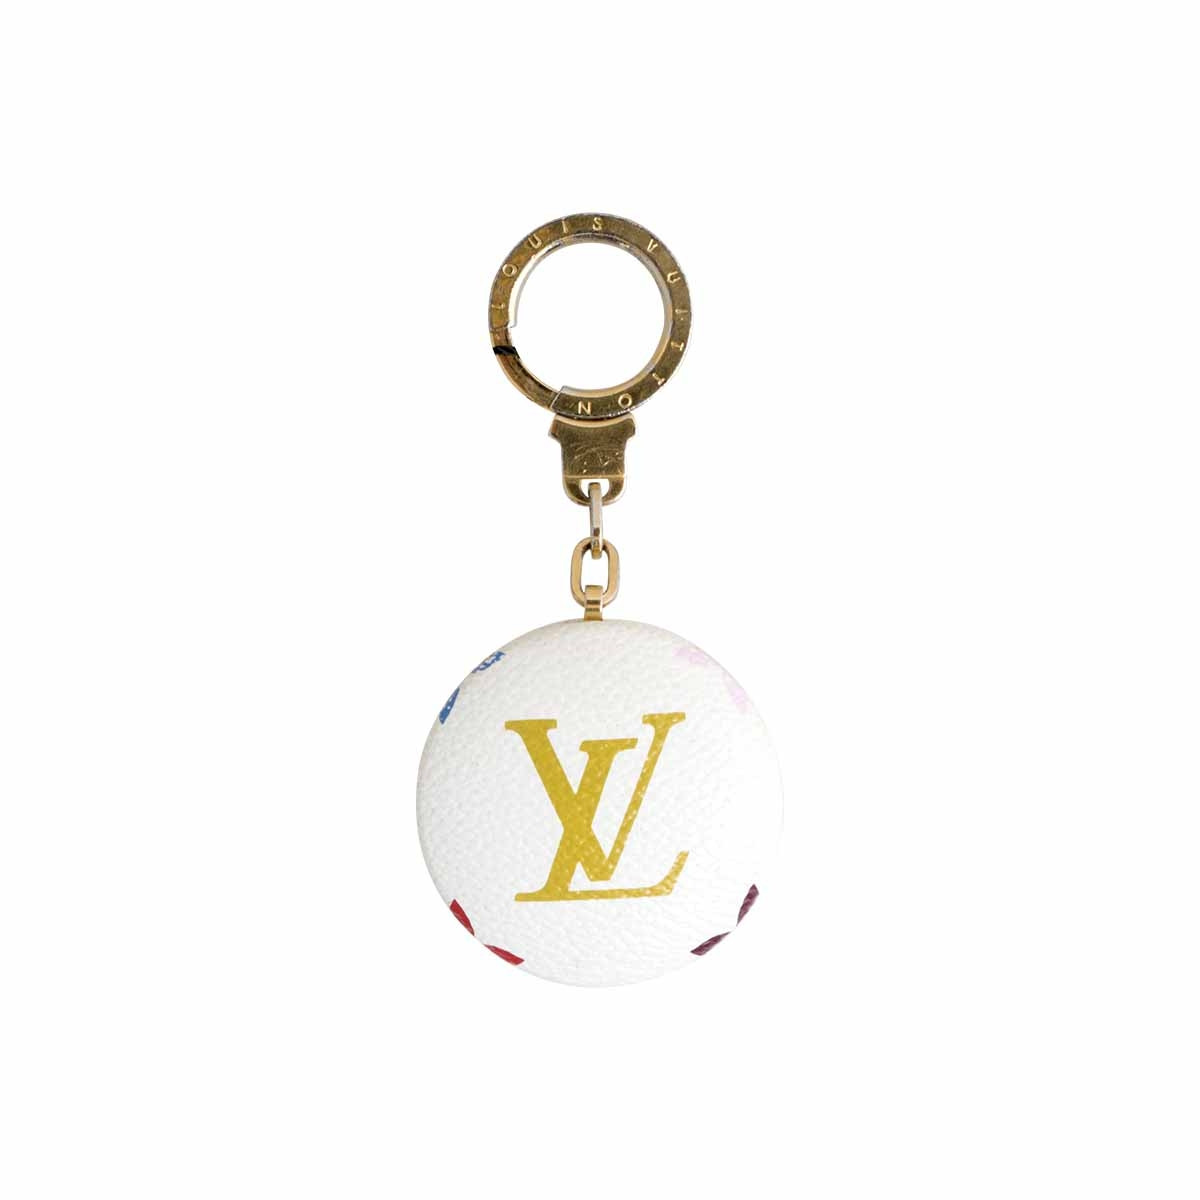 Vintage Louis Vuitton Multicolor Astropill Light Key